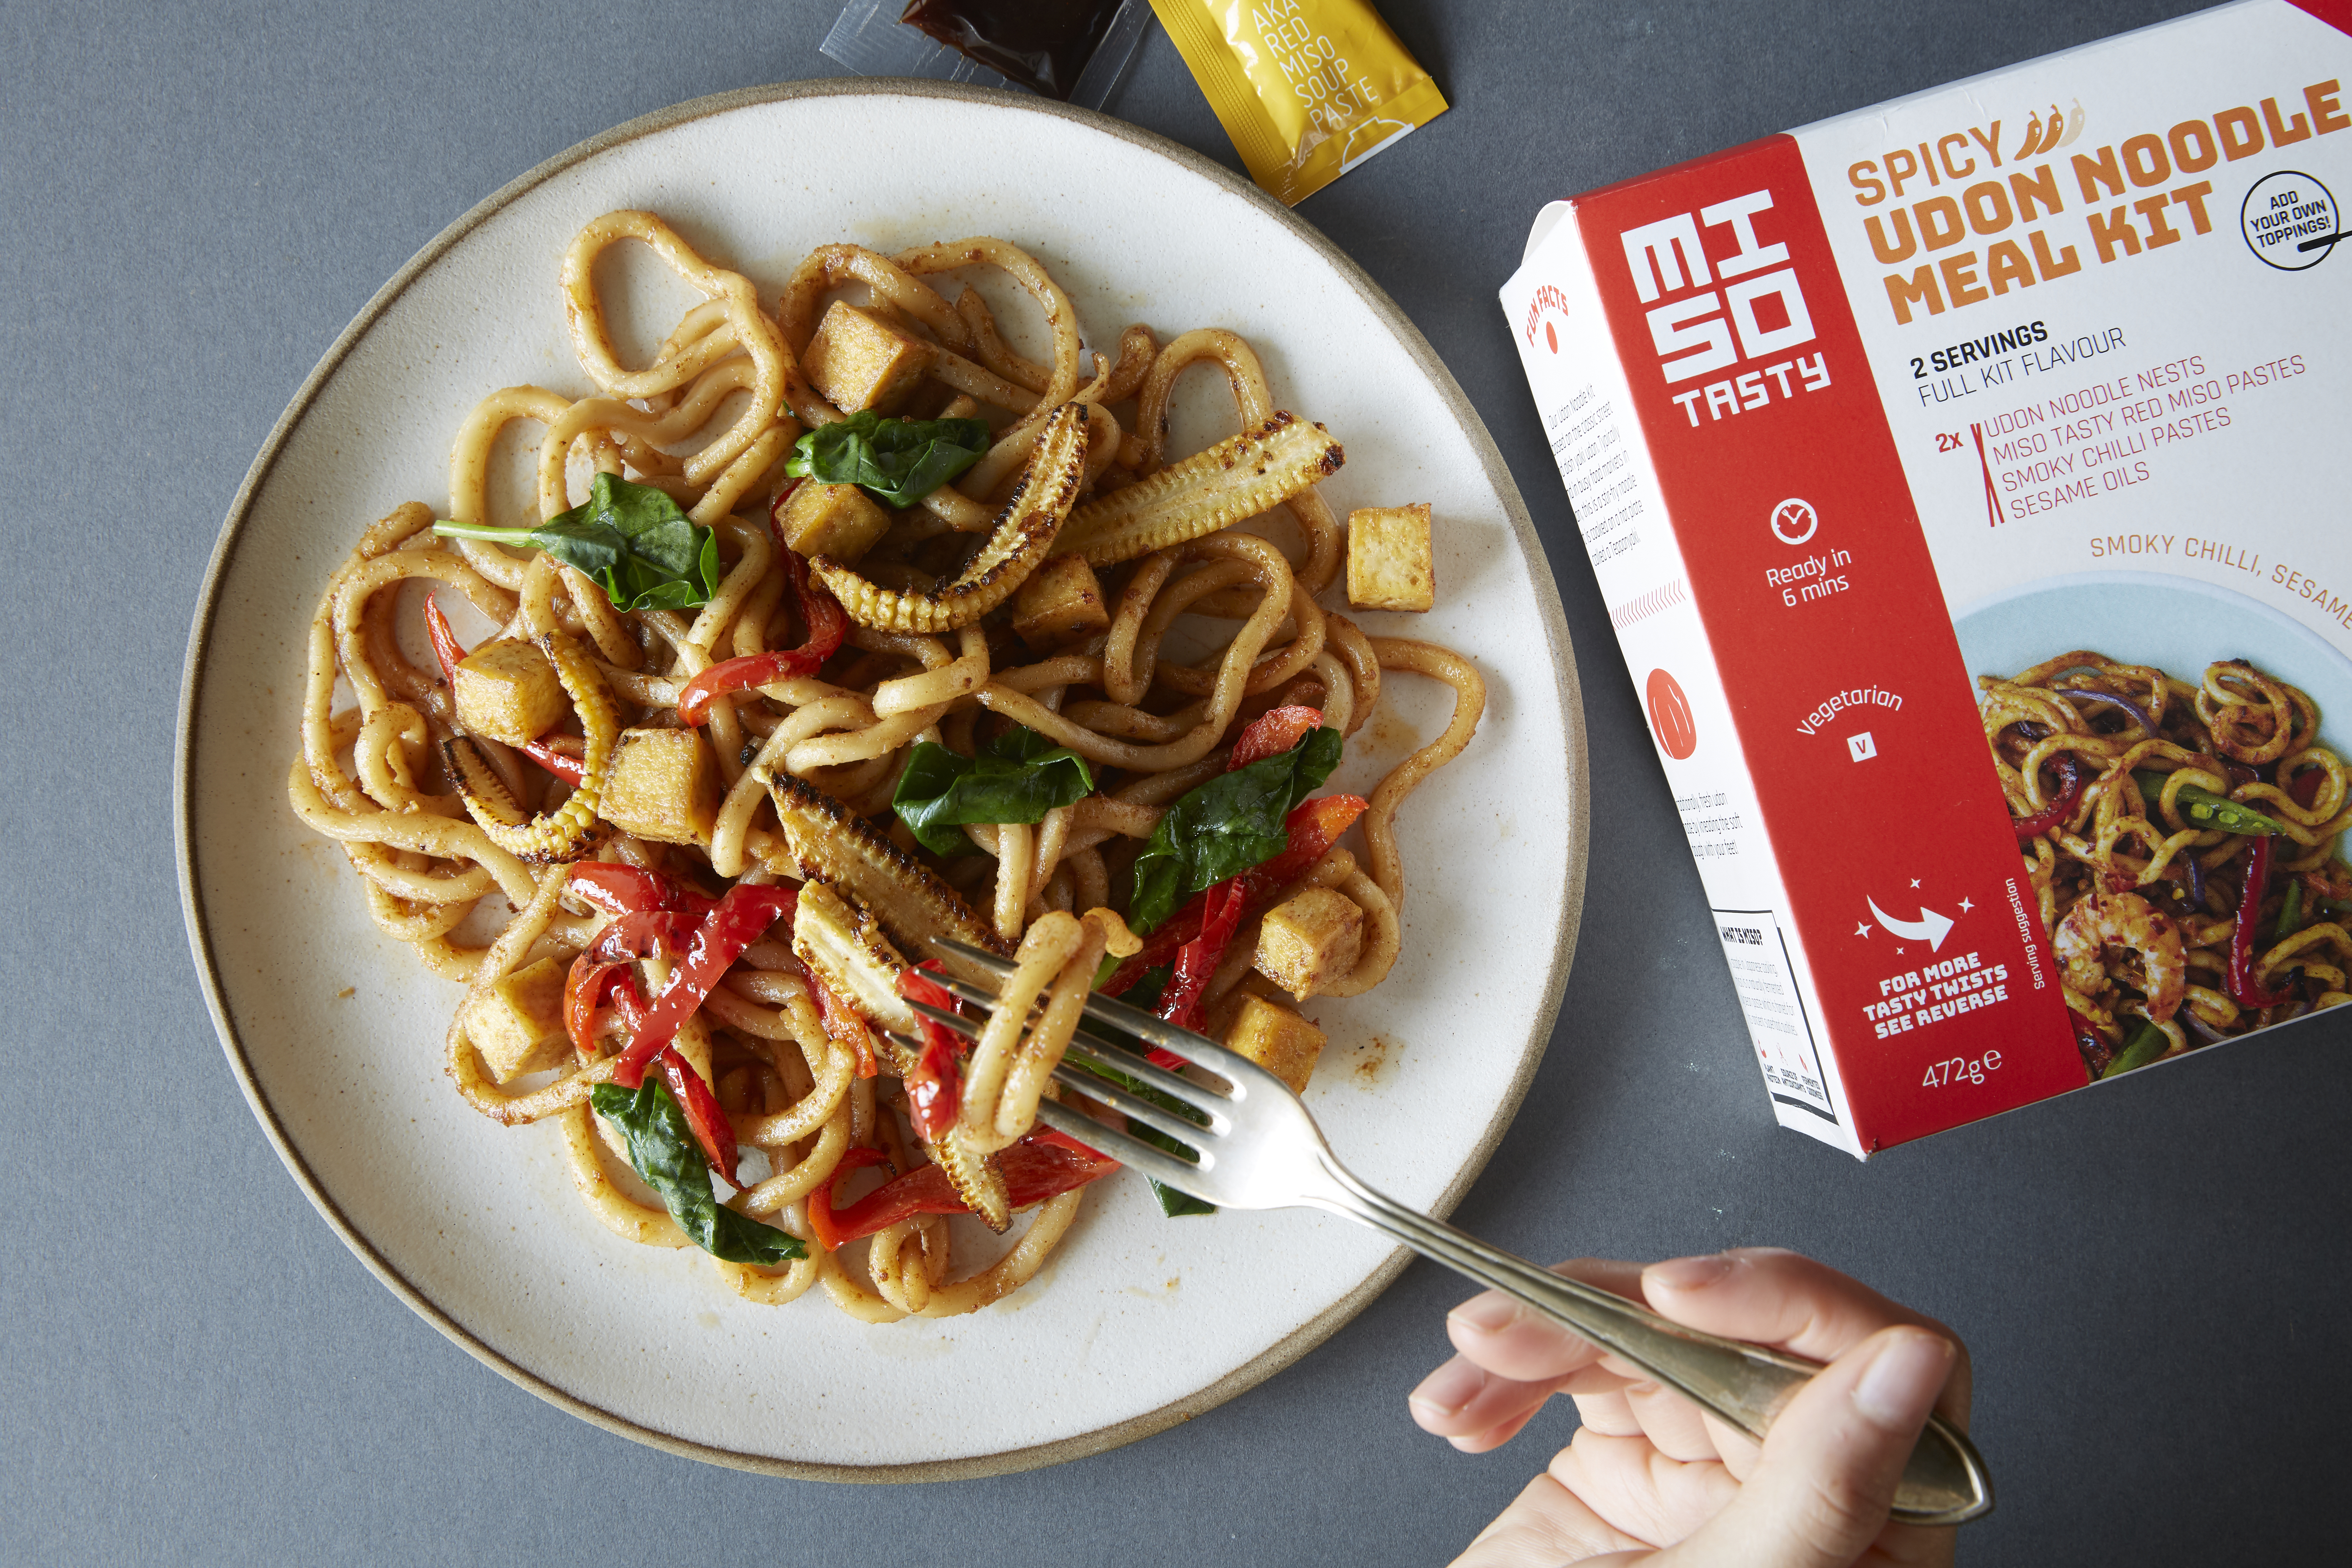 Miso Tasty Spicy Udon Noodle Kit